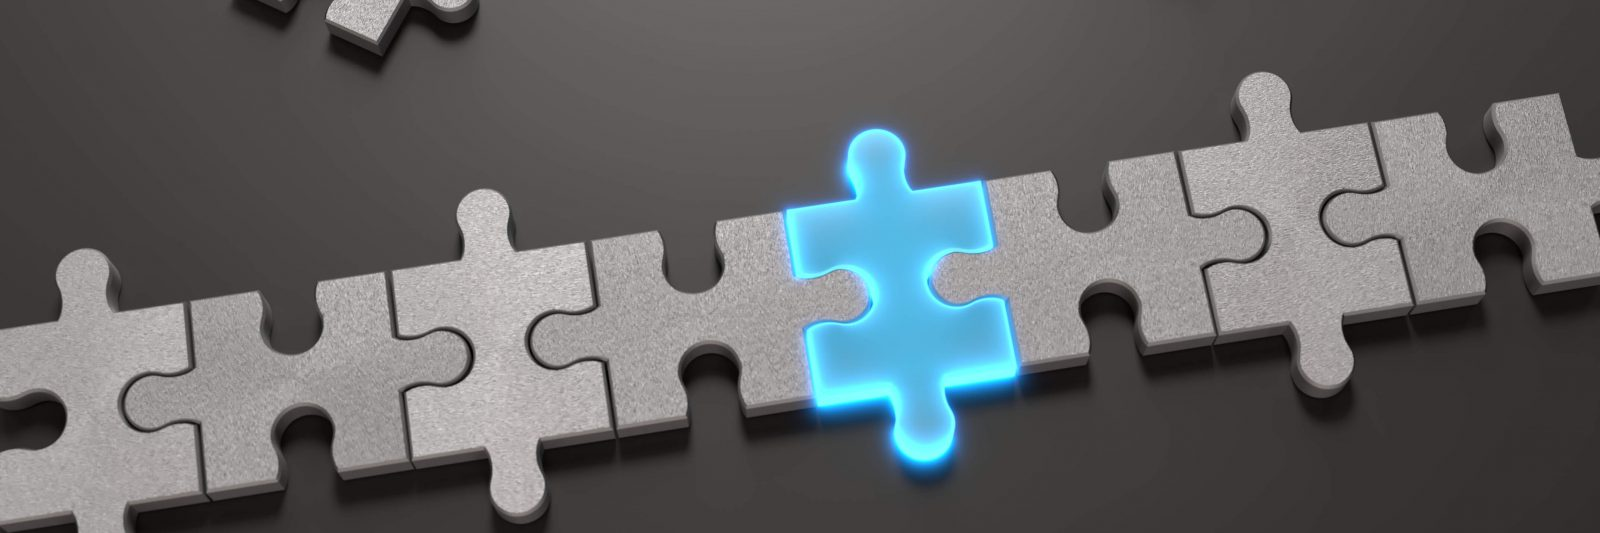 Puzzle pieces fit together